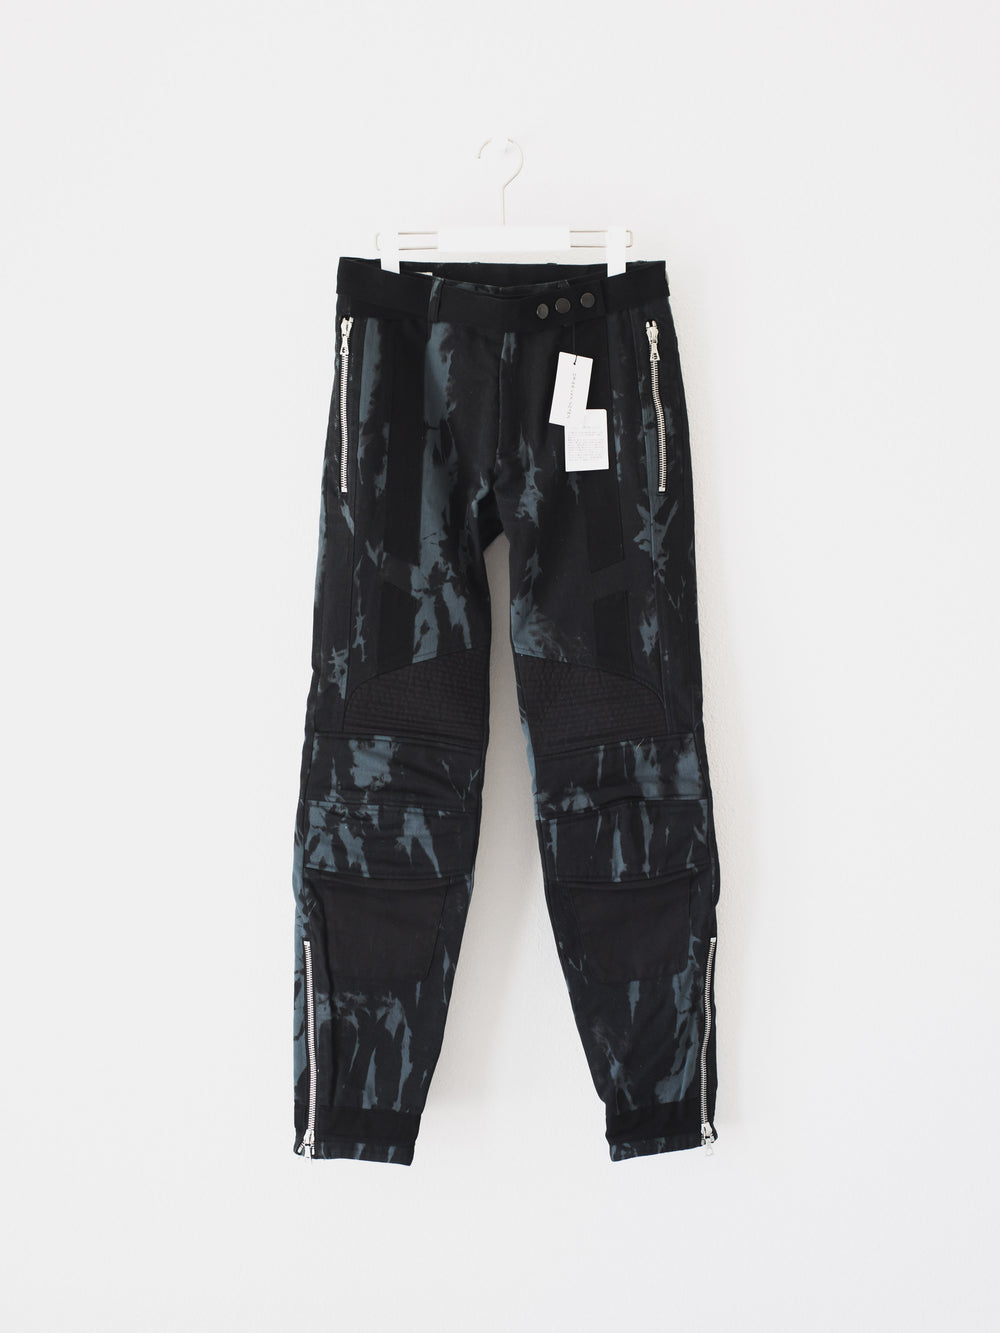 Dries Van Noten AW14 Biker Zip Pants